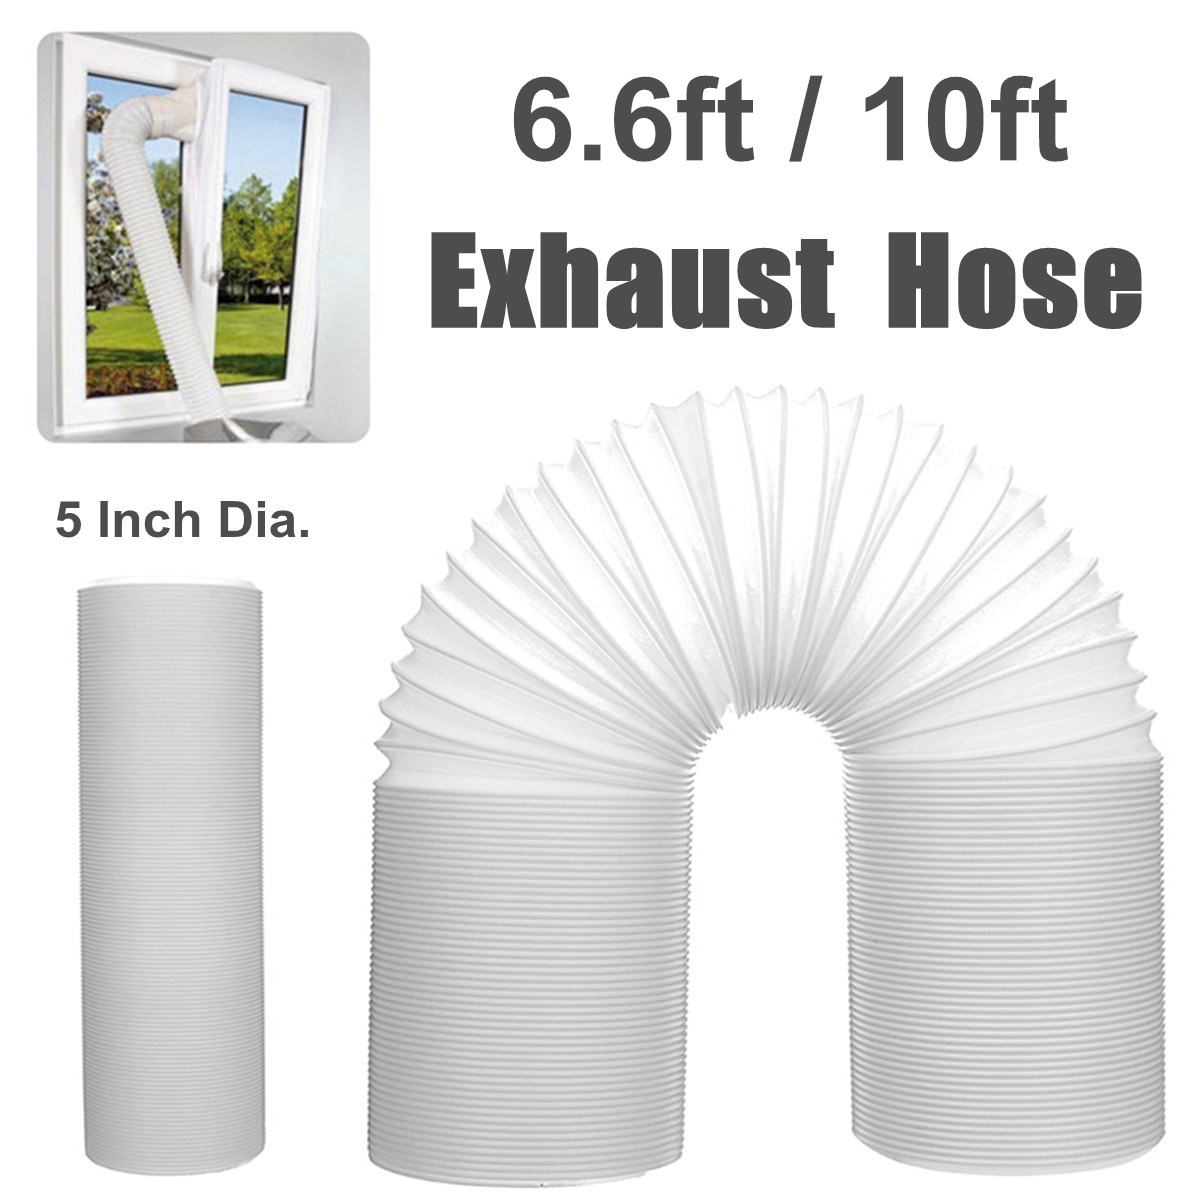 6 6ft 10ft long portable flexible air conditioner exhaust pipe vent hose tube 5 inch dia duct outlet replacement walmart com